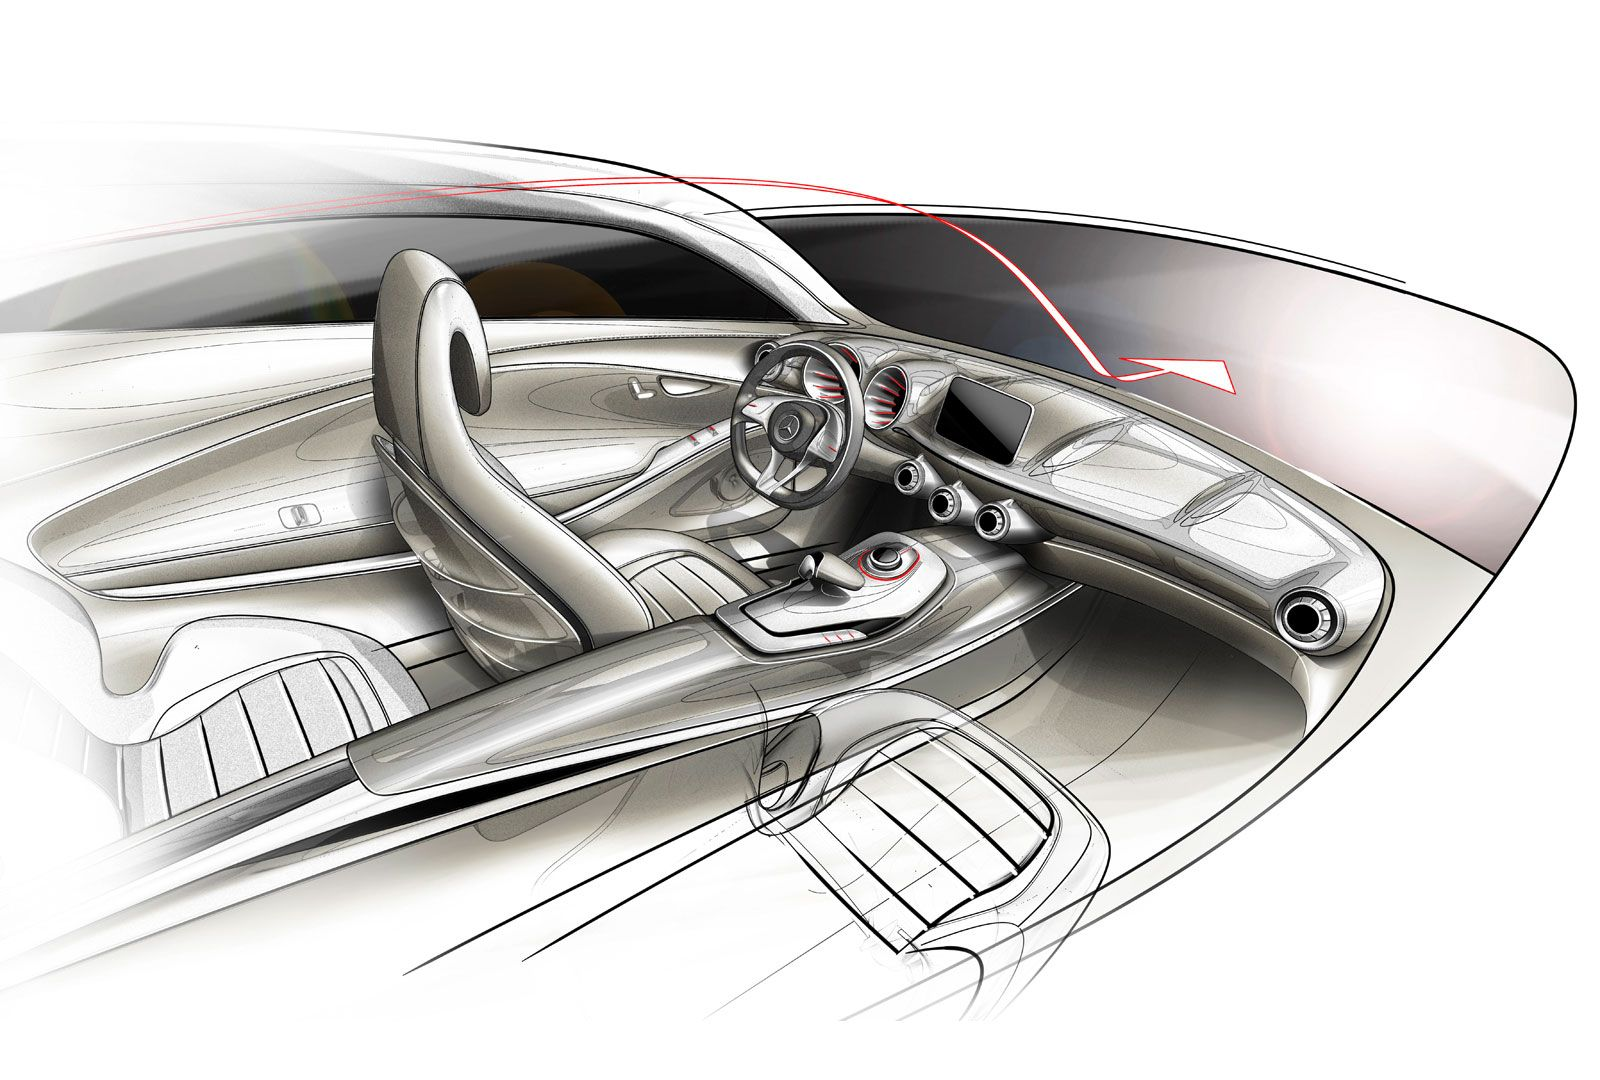 Mercedes Benz Concept A Class Interior Design Sketch